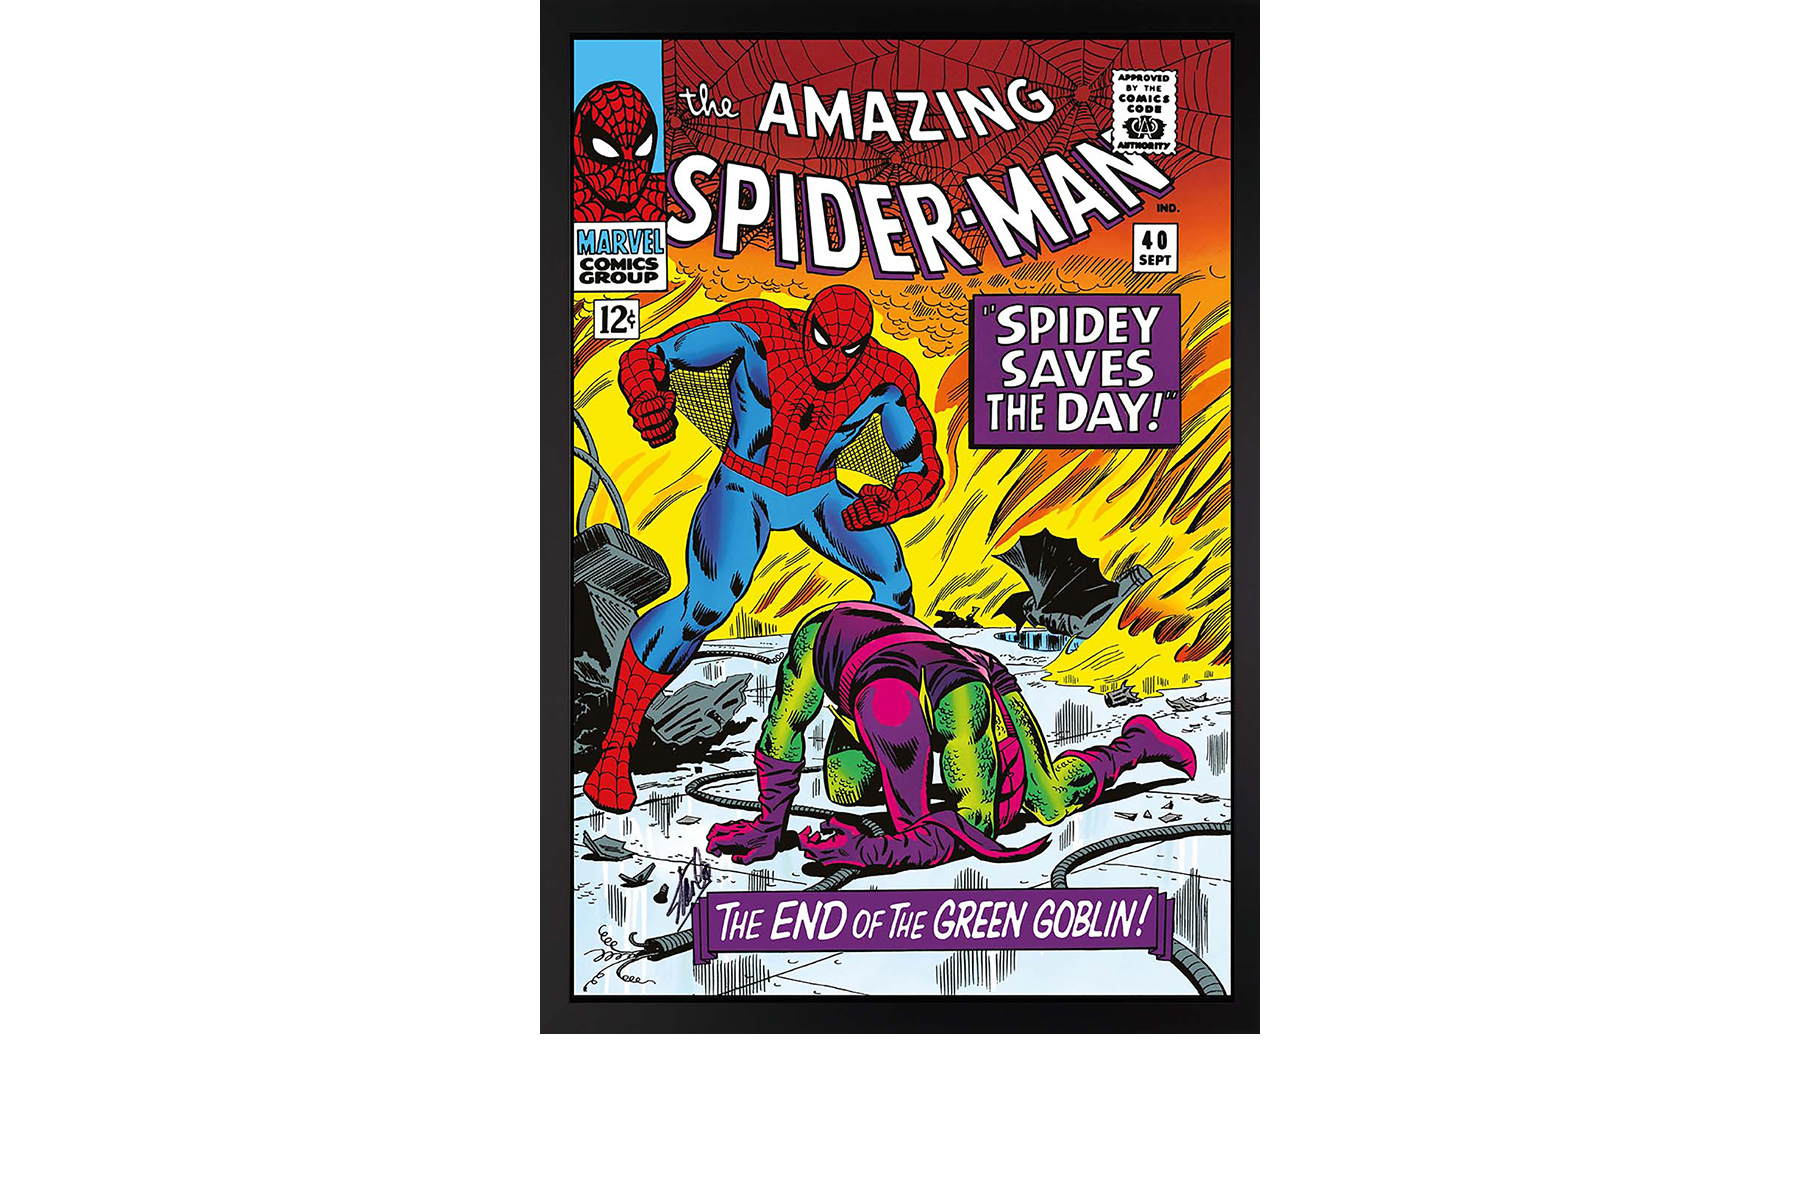 The Amazing Spider-Man: Spidey Saves The Day - signed by Stan Lee